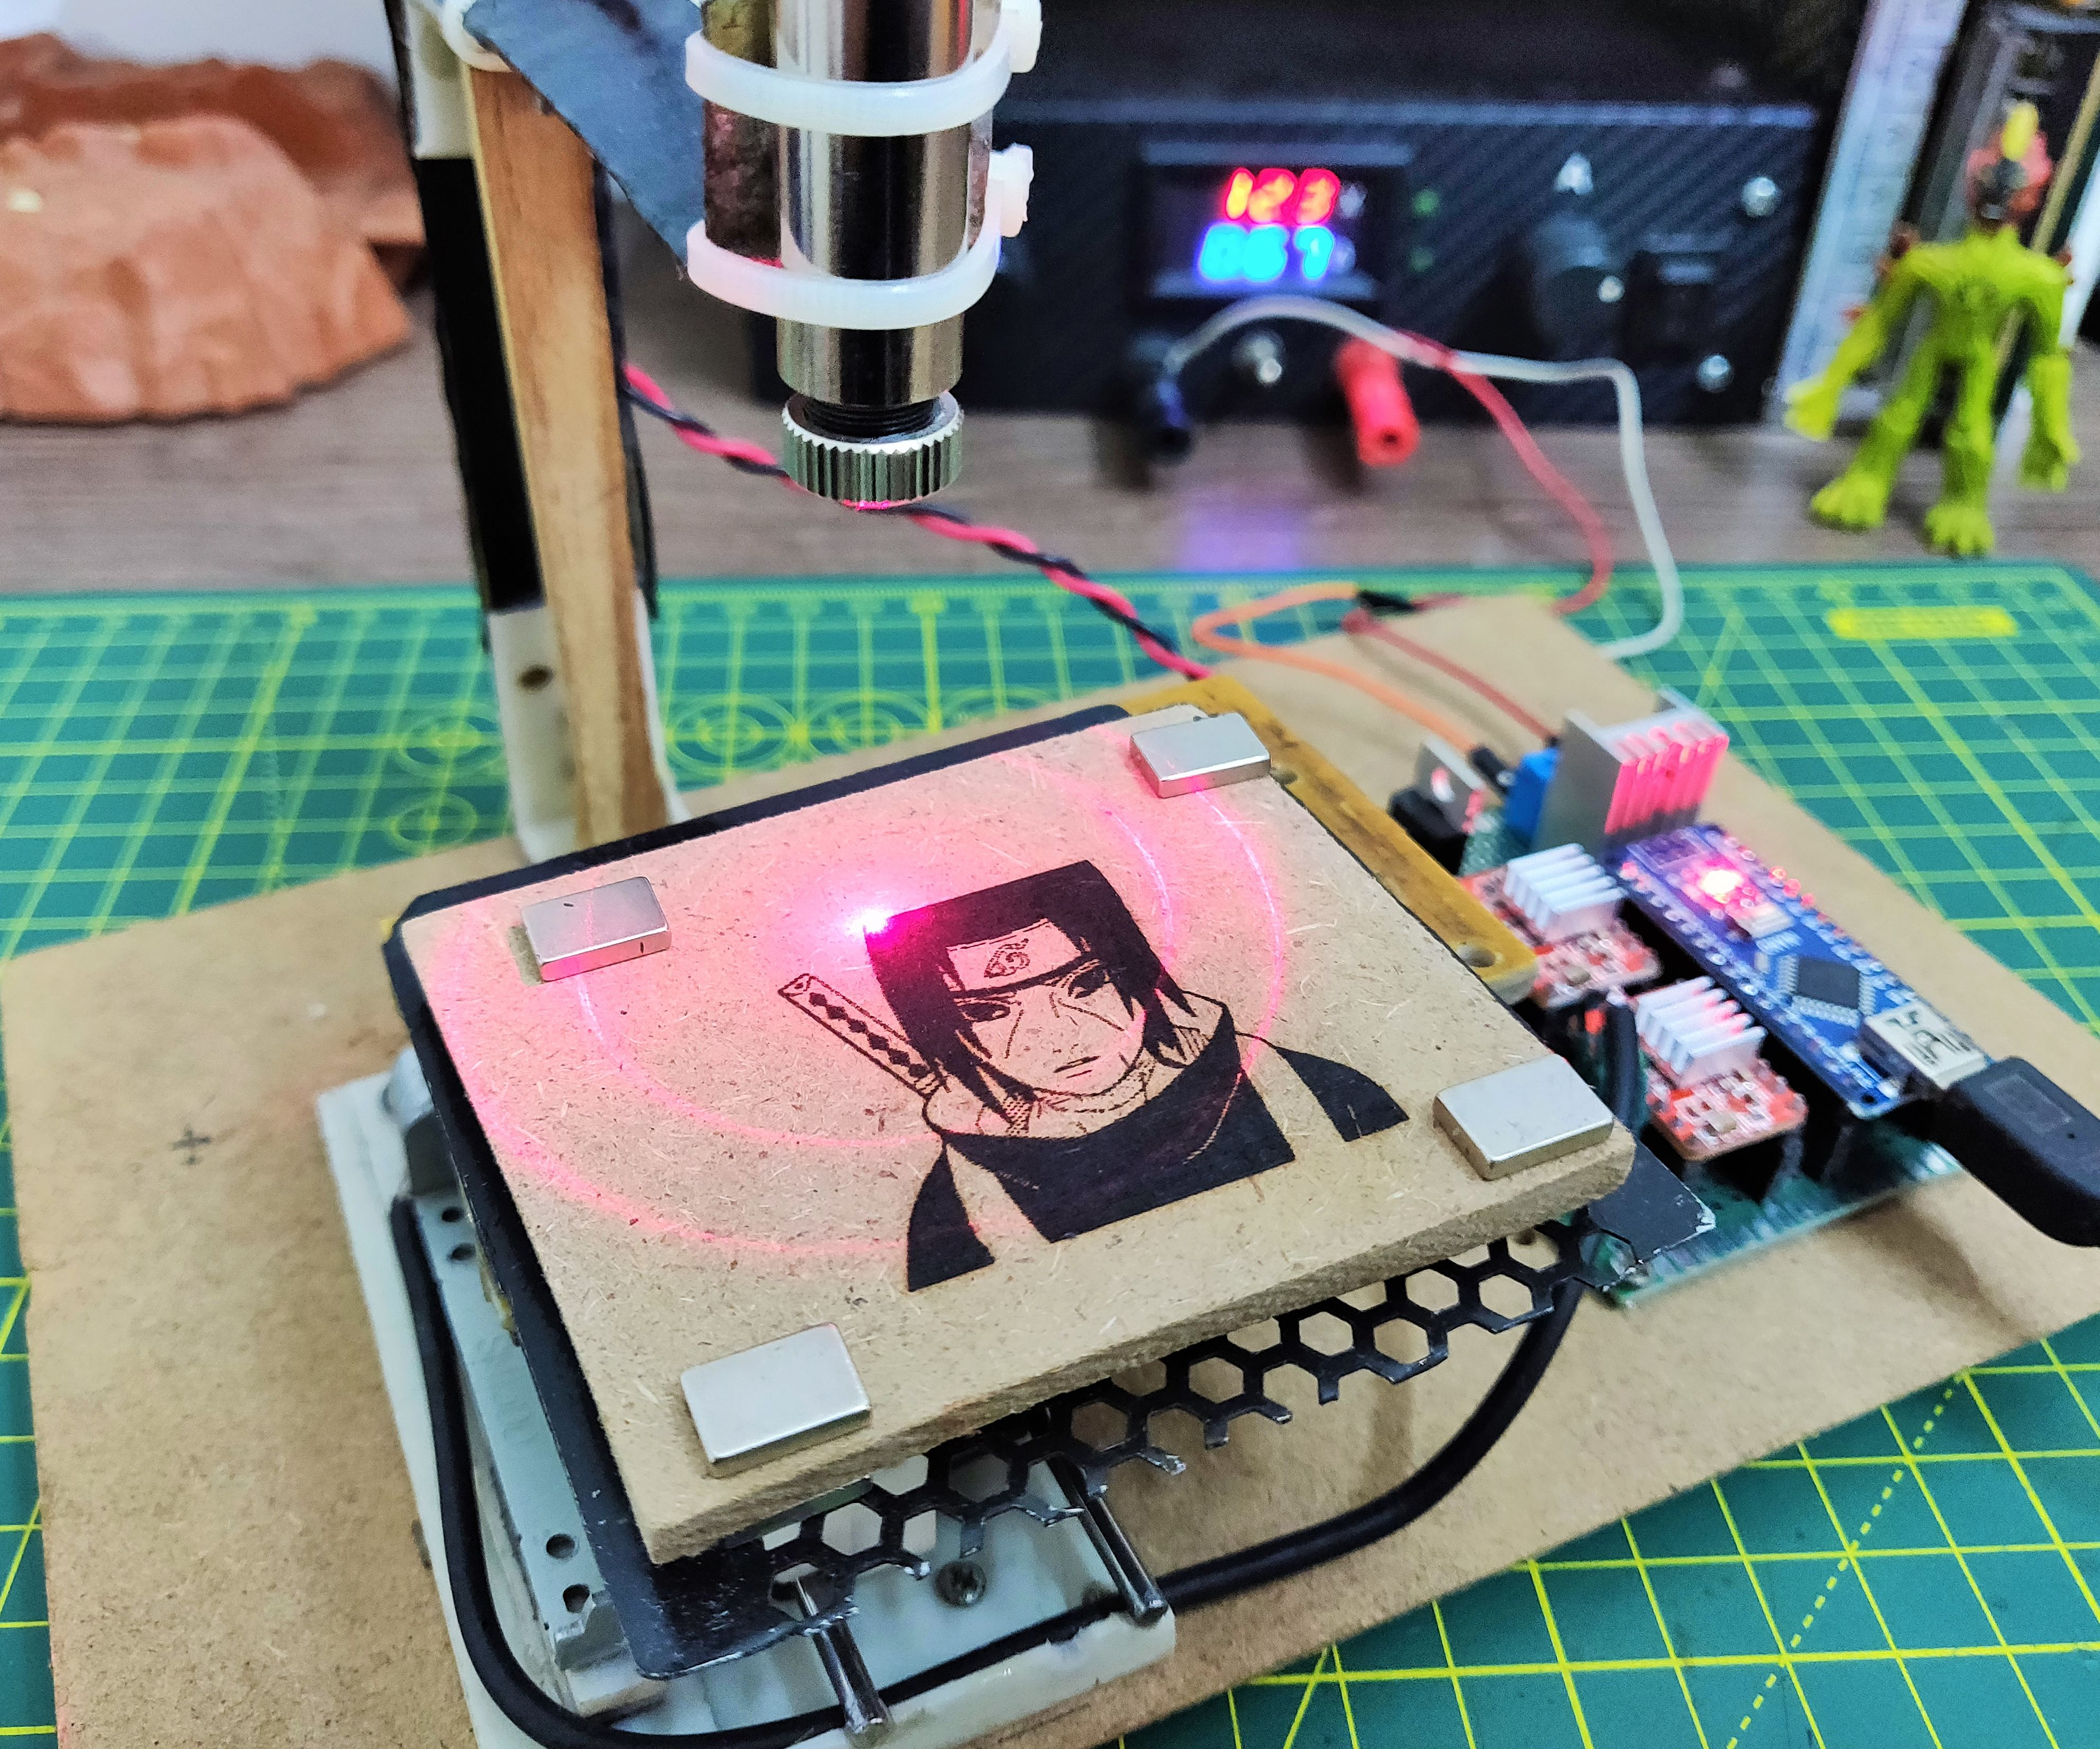 Mini CNC Laser Wood Engraver and Paper Cutter.